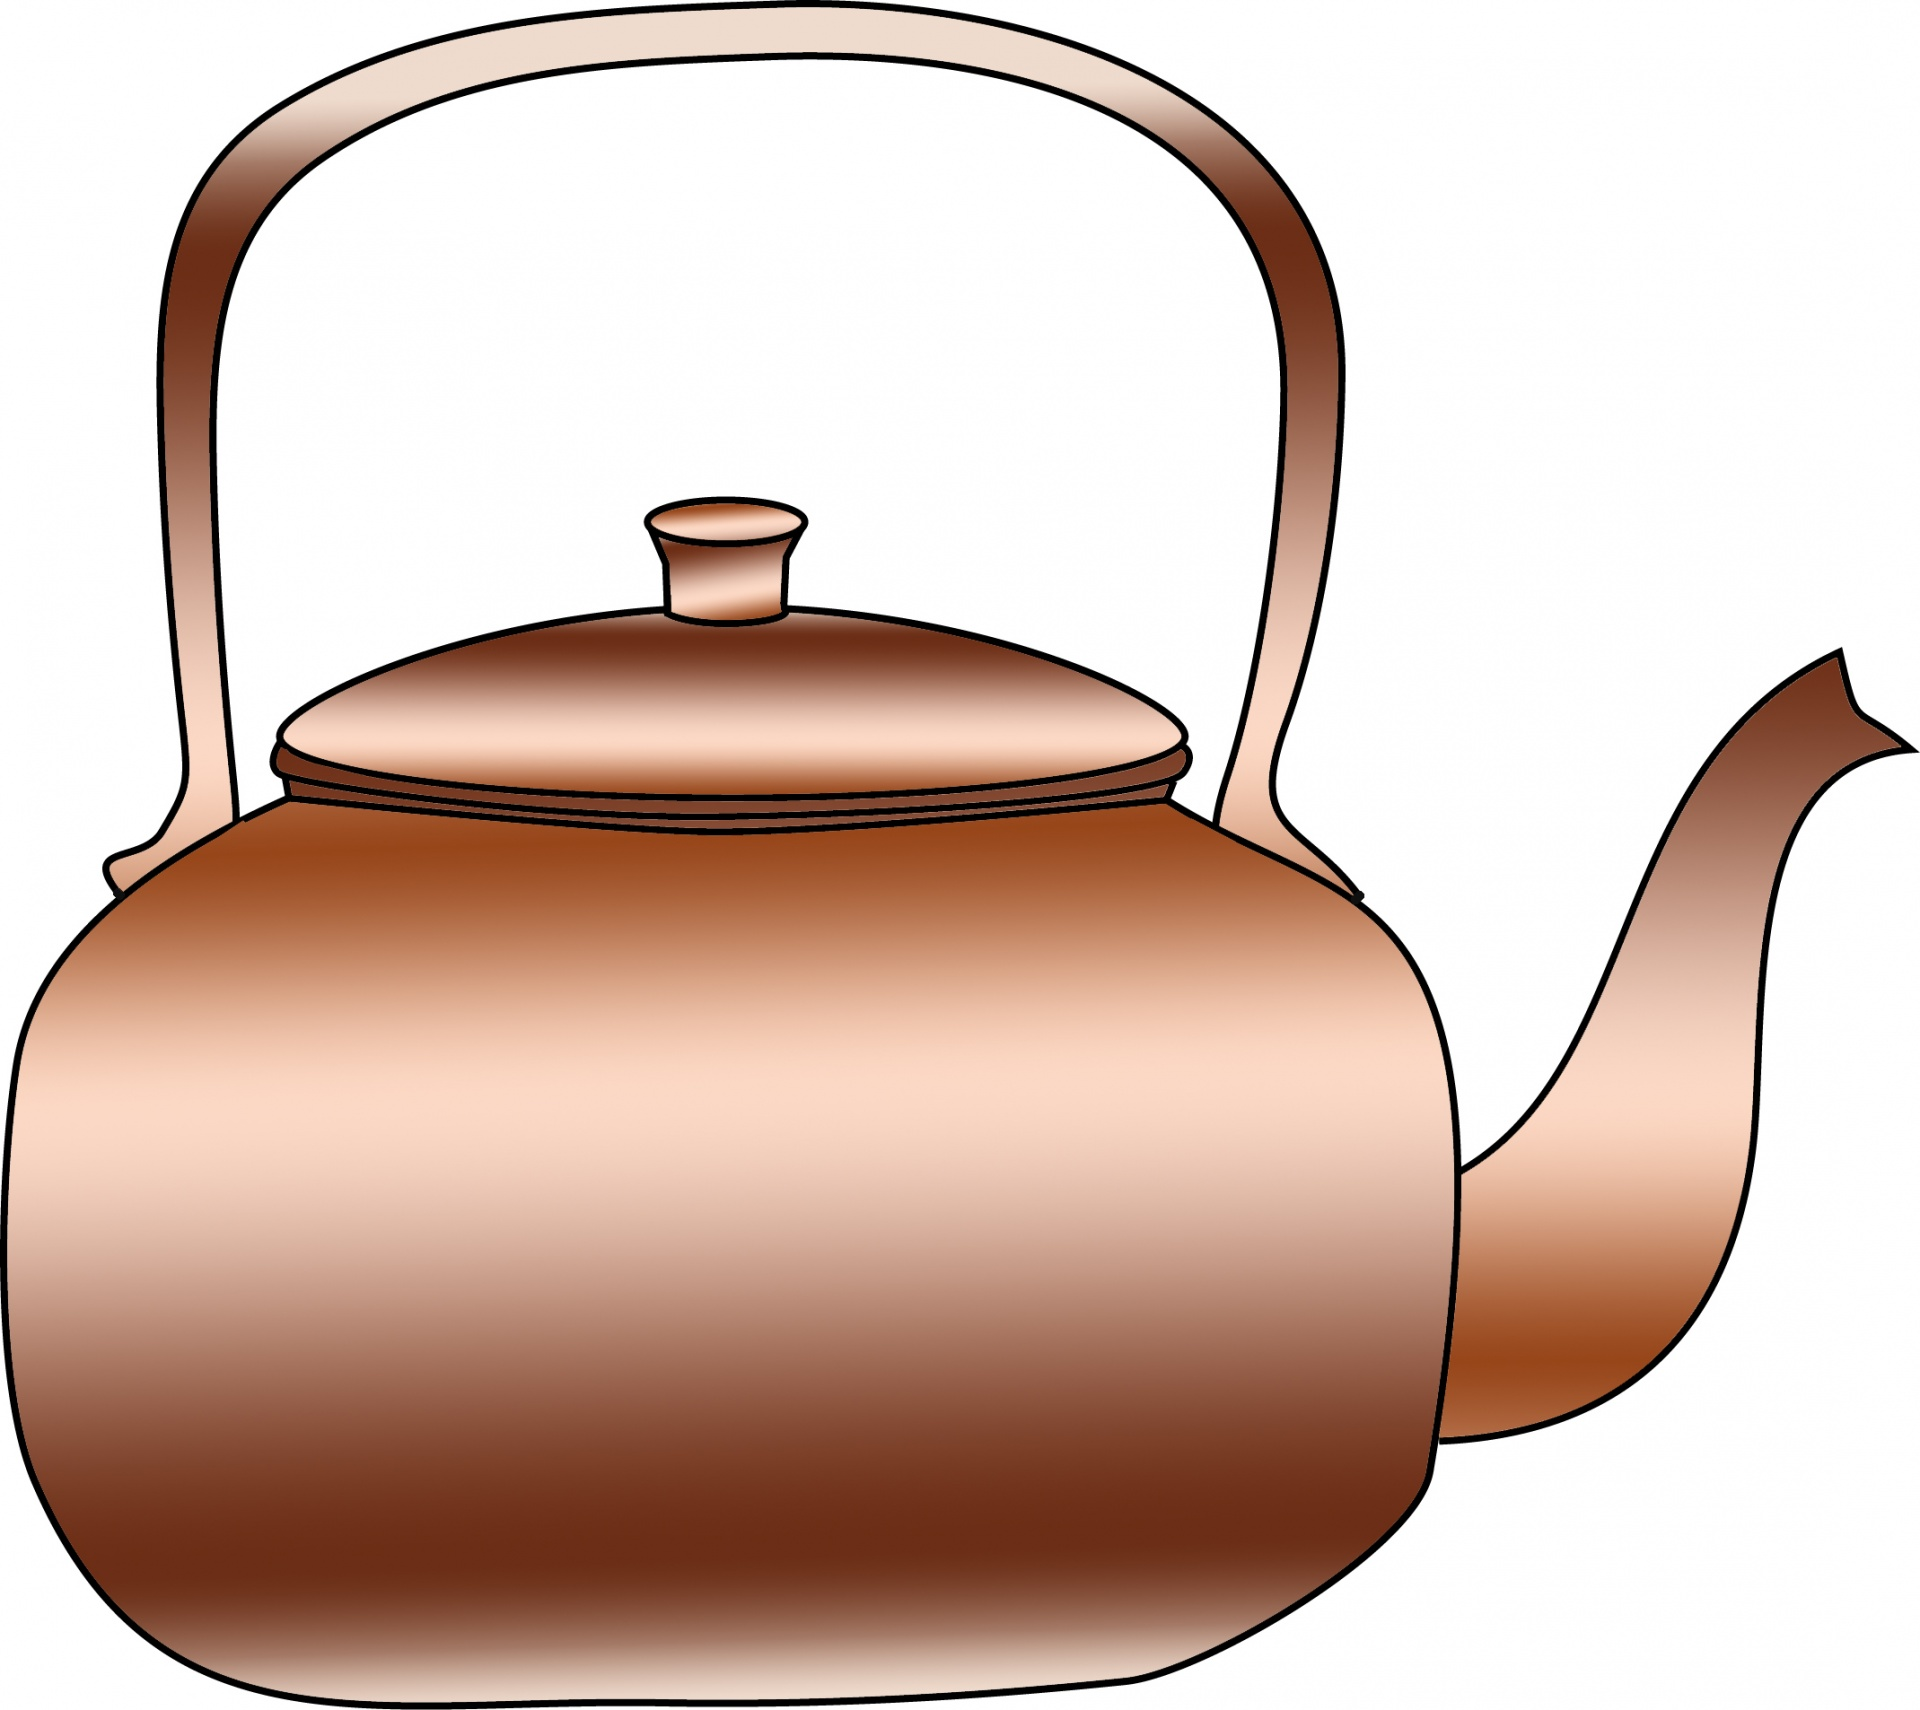 Copper Kettle Clipart Free Stock Photo.